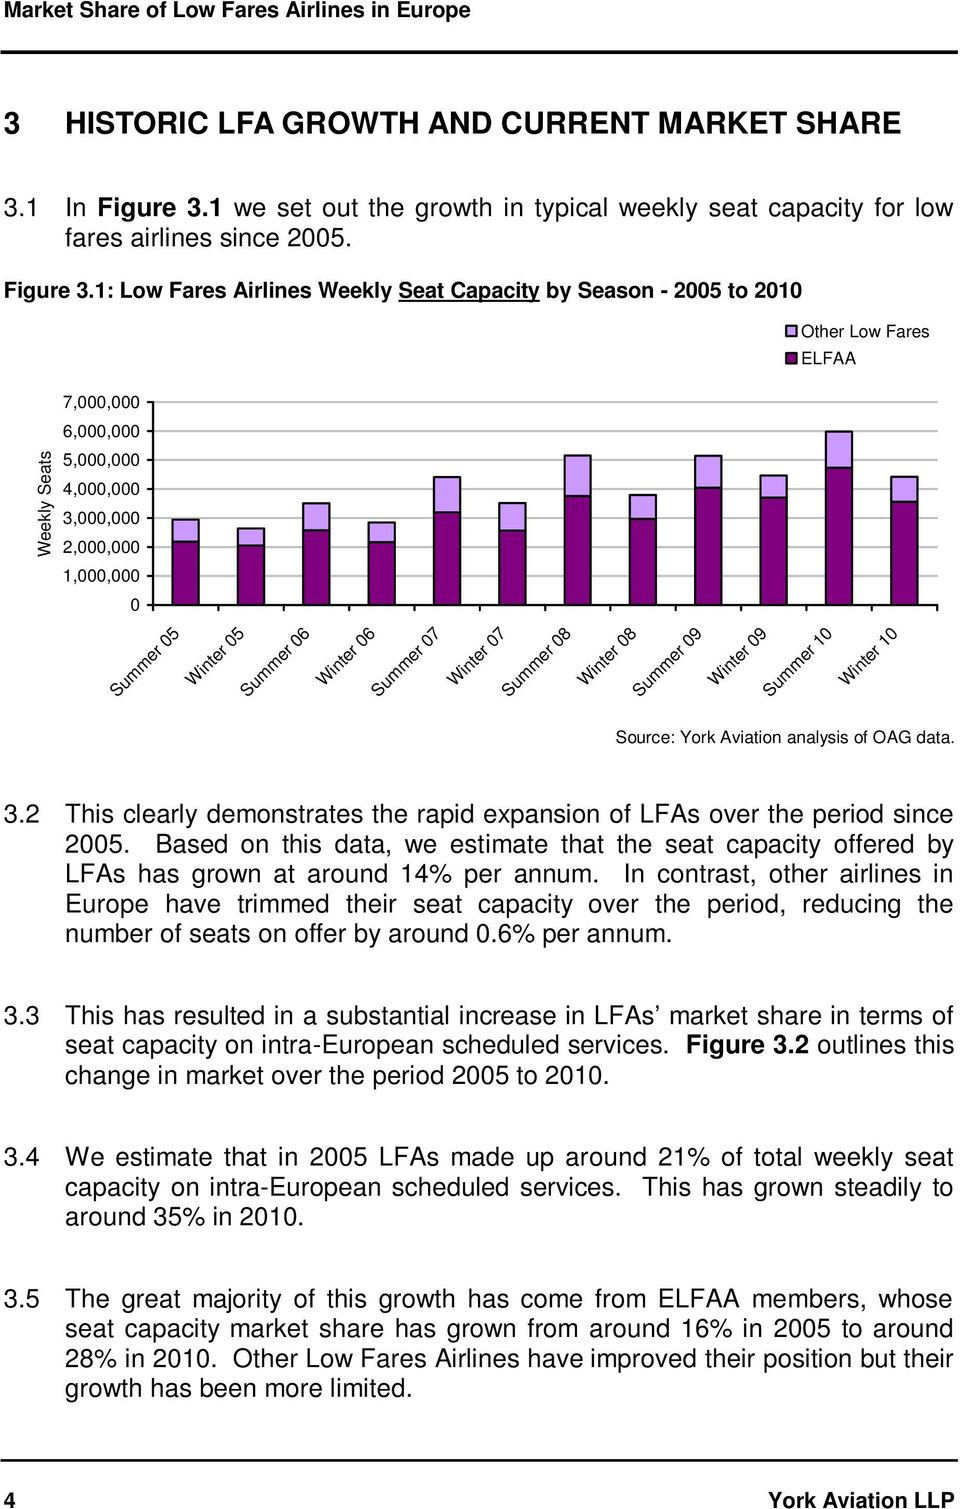 1: Low Fares Airlines Weekly Seat Capacity by Season - 2005 to 2010 Other Low Fares ELFAA 7,000,000 6,000,000 Weekly Seats 5,000,000 4,000,000 3,000,000 2,000,000 1,000,000 0 Summer 05 Winter 05